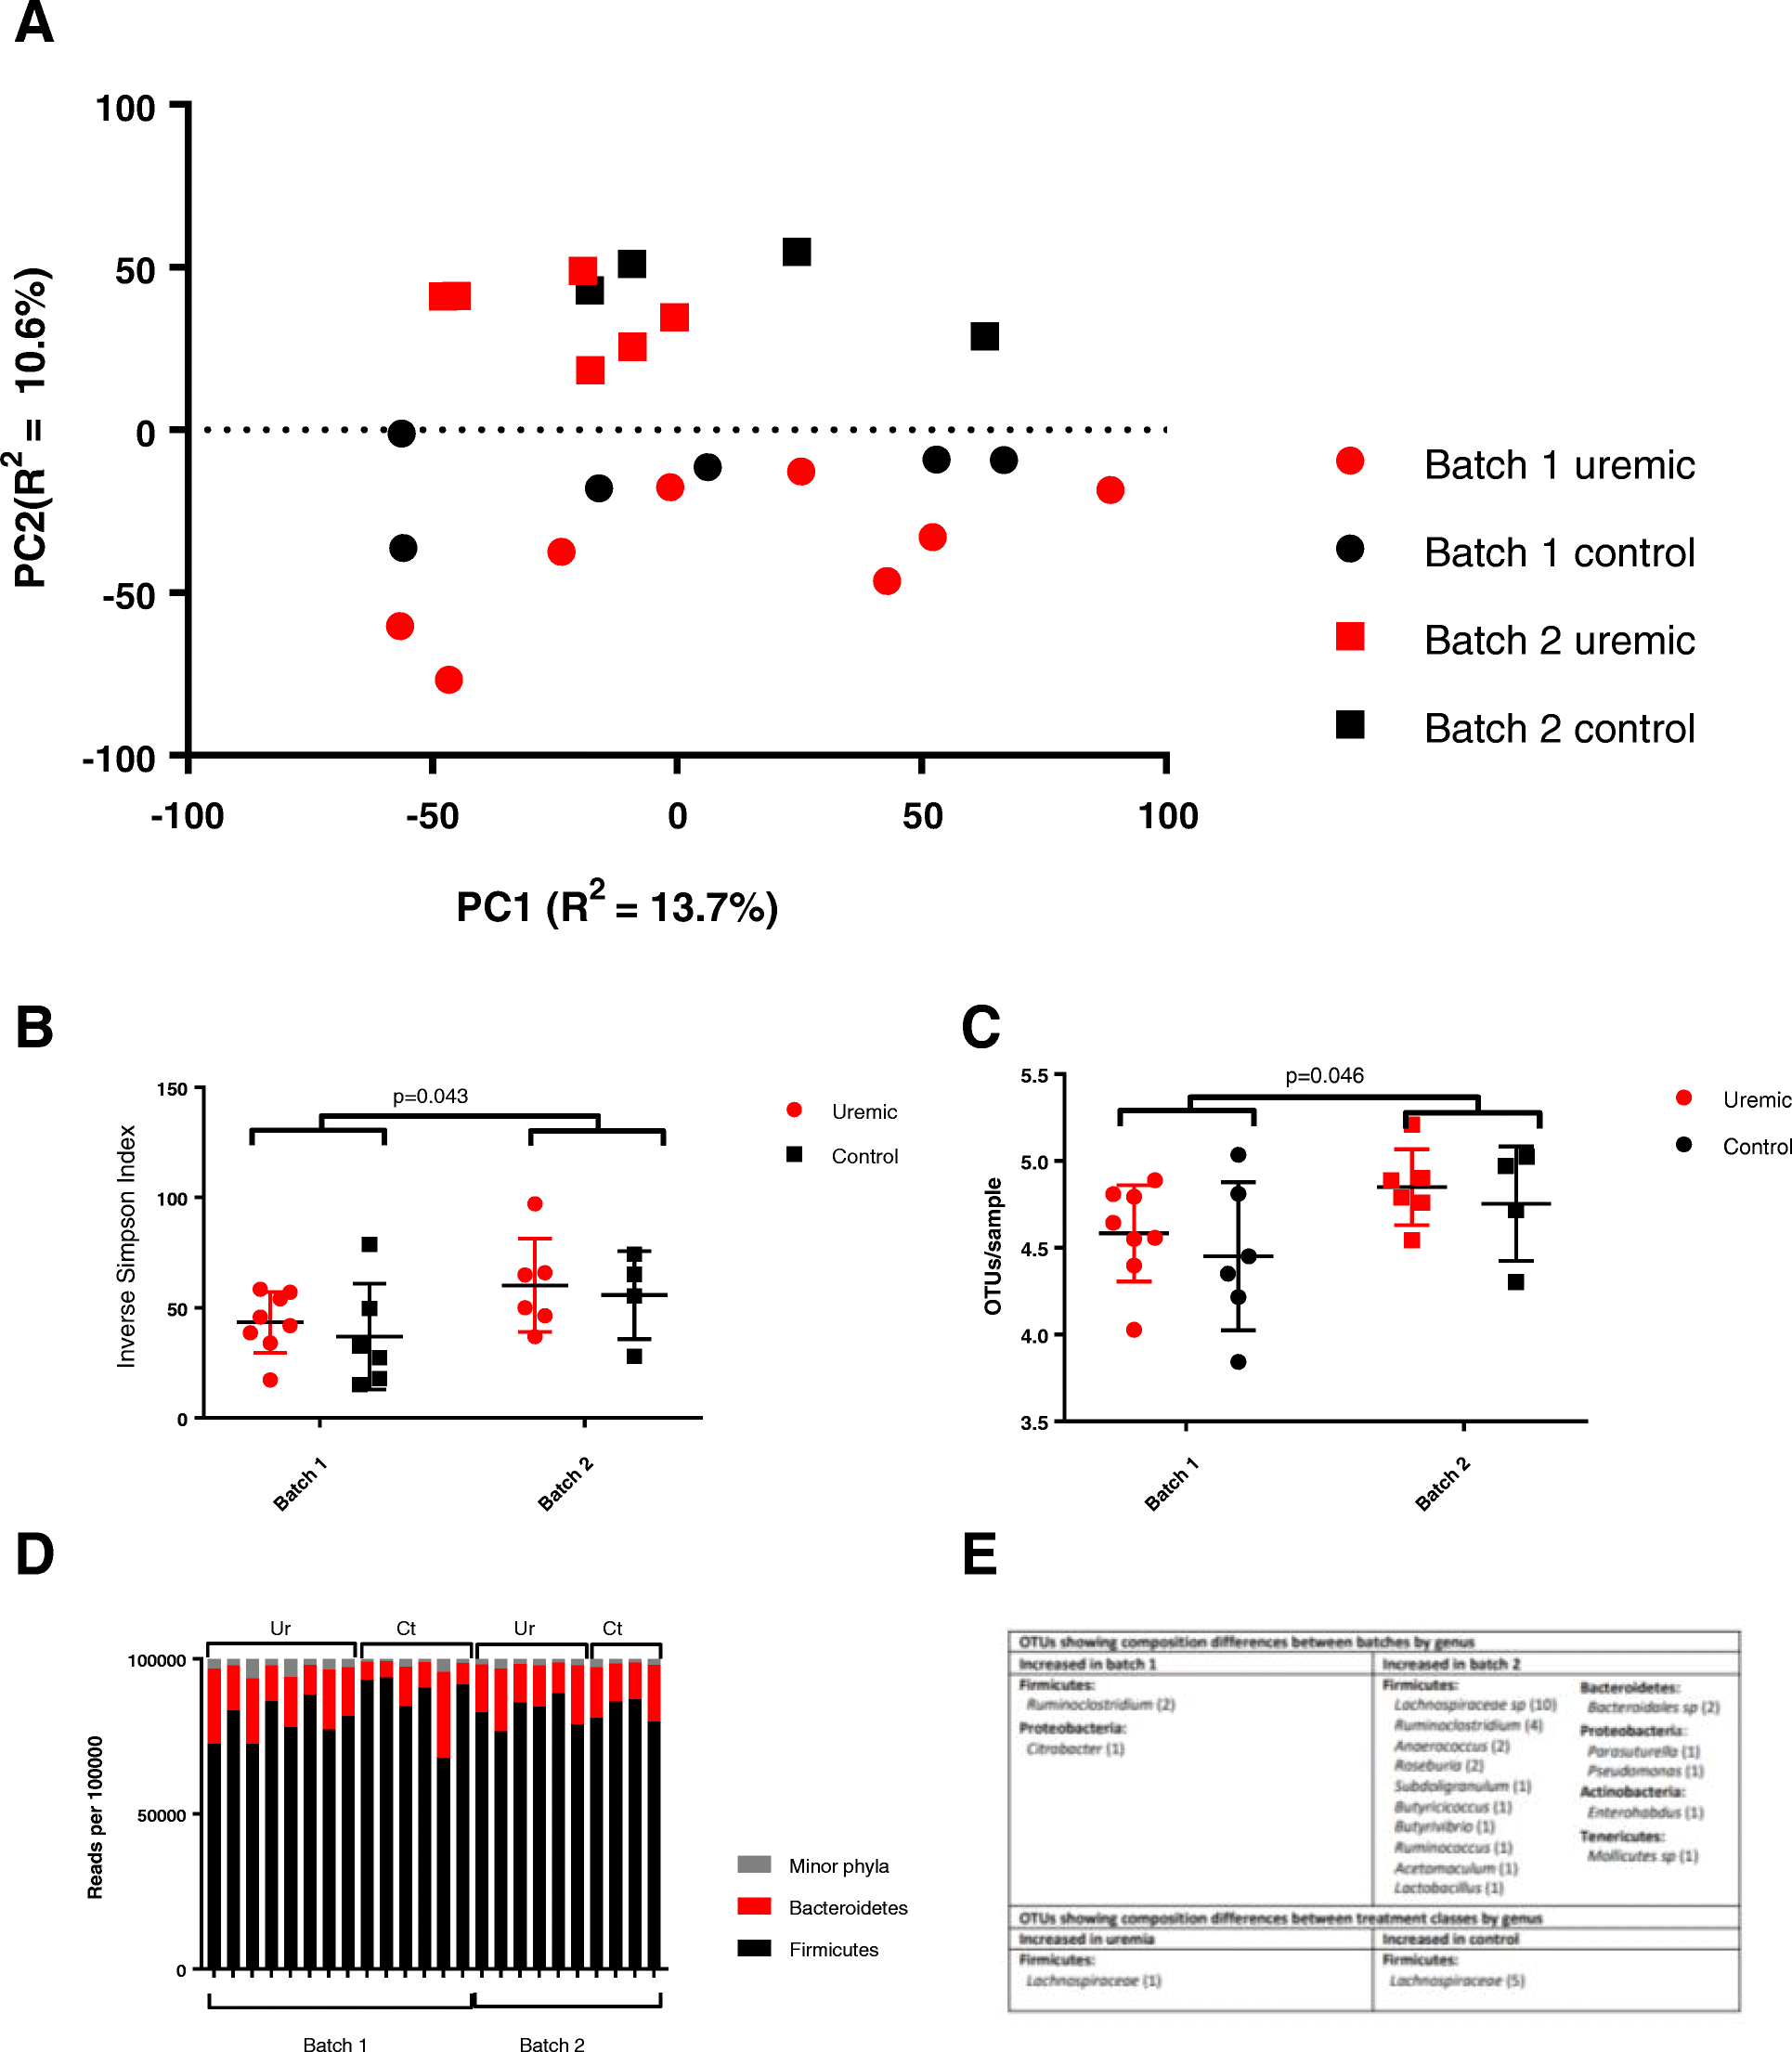 Batch effect exerts a bigger influence on the rat urinary